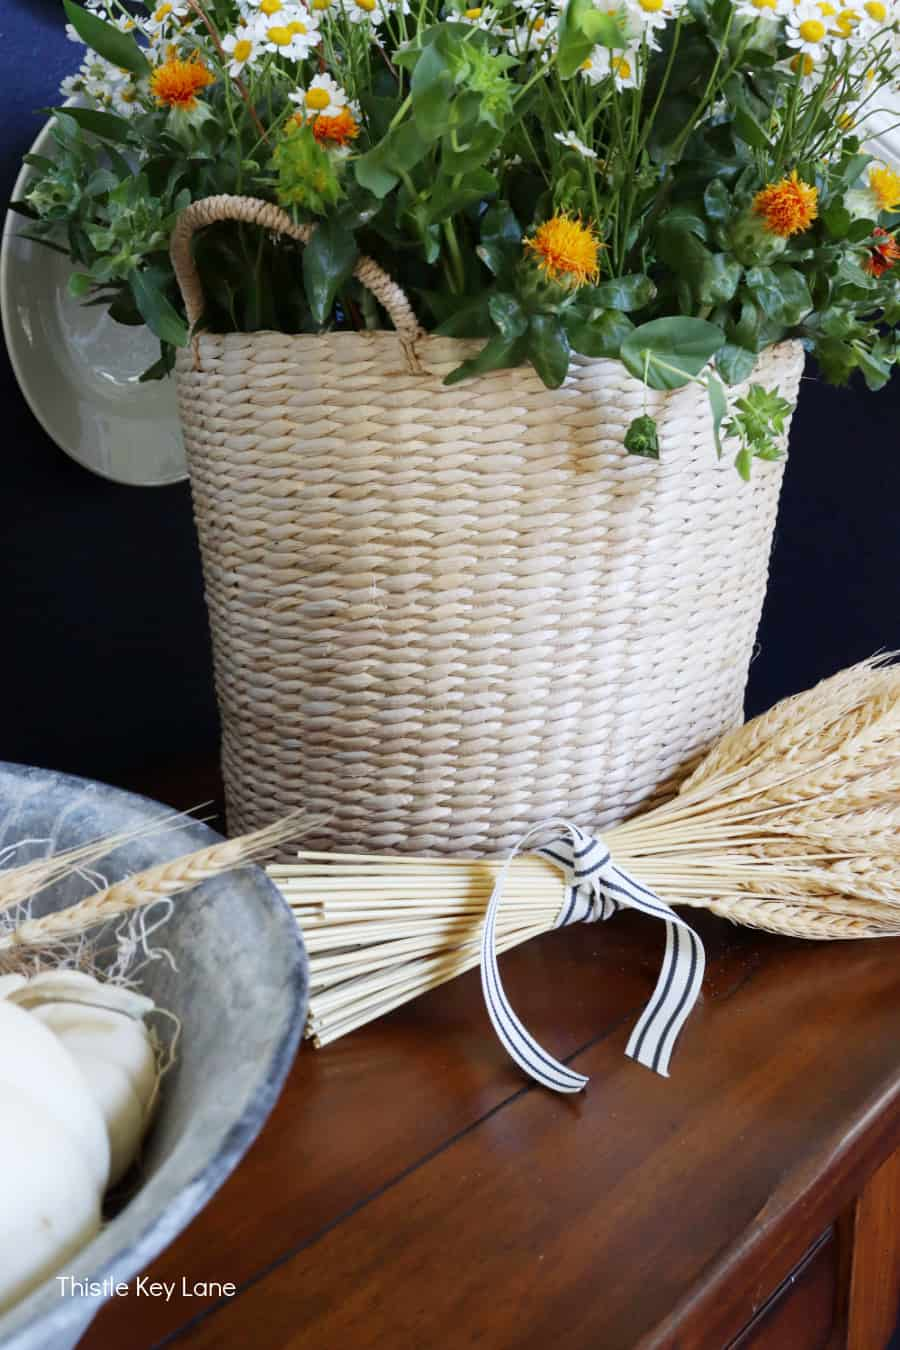 Wheat stalks tied with ribbon and a basket of fall flowers.